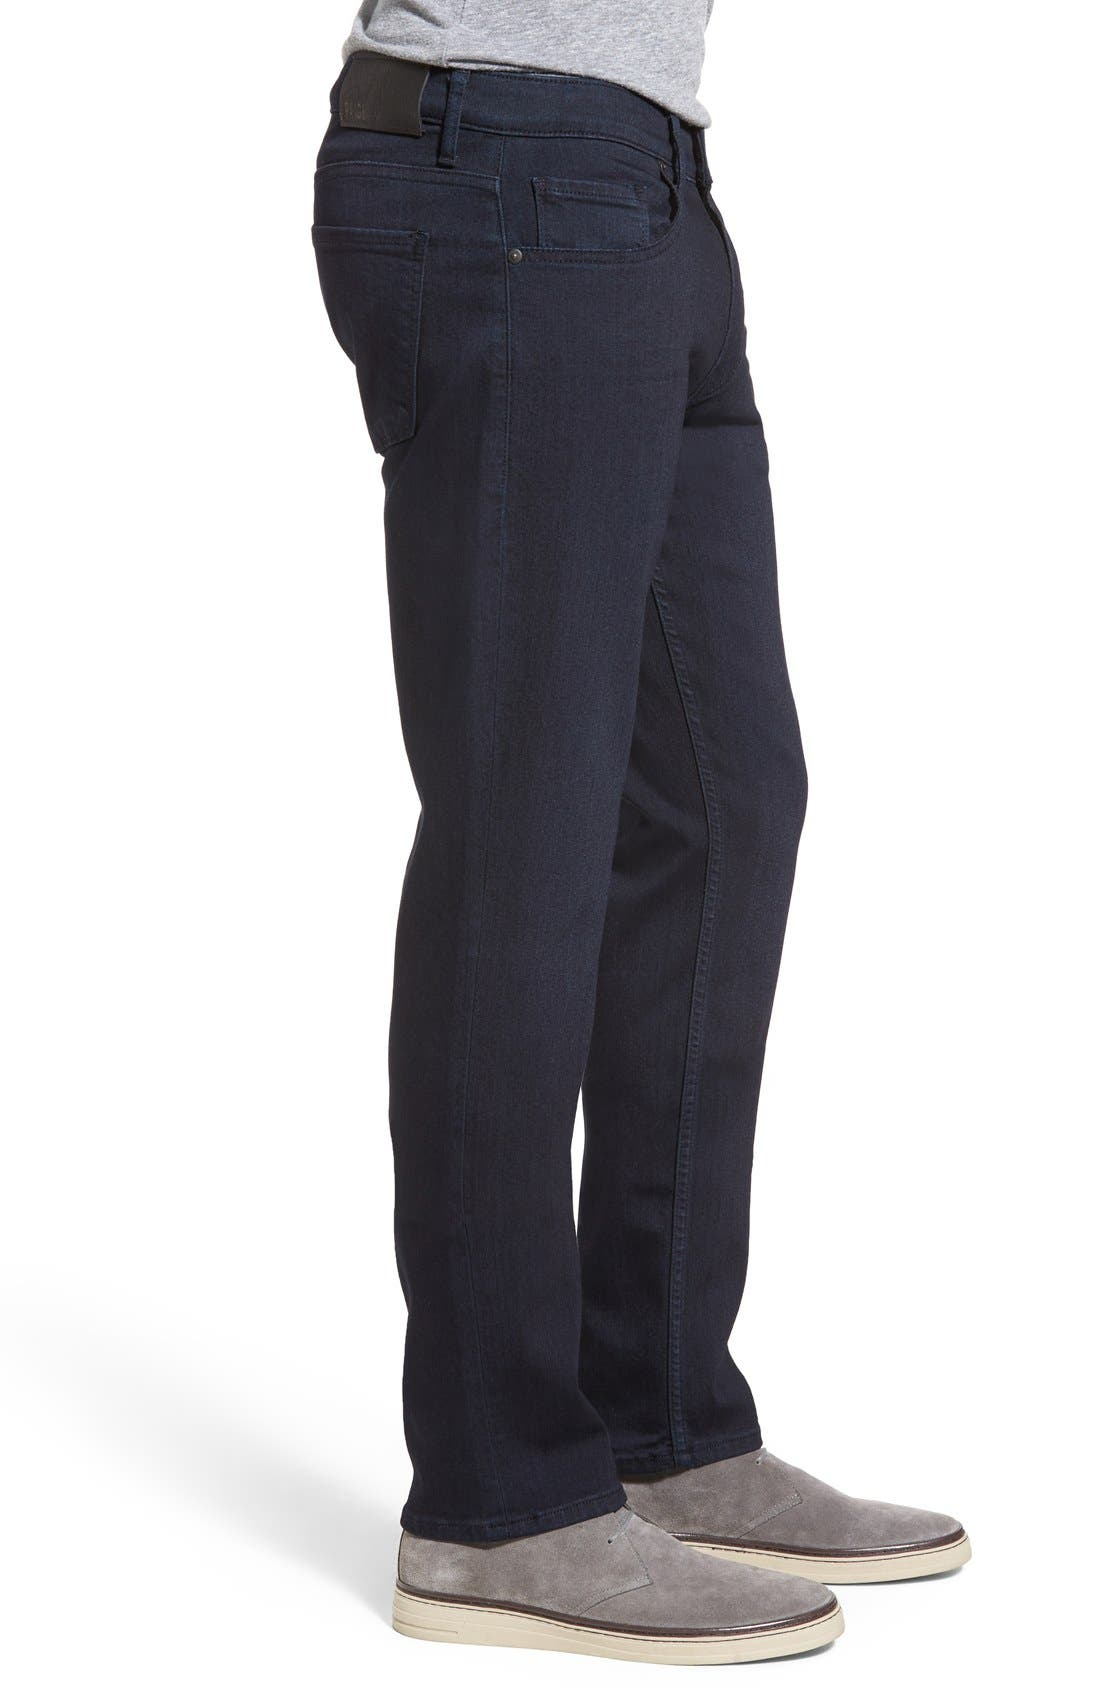 PAIGE, Transcend - Federal Slim Straight Leg Jeans, Alternate thumbnail 10, color, INKWELL